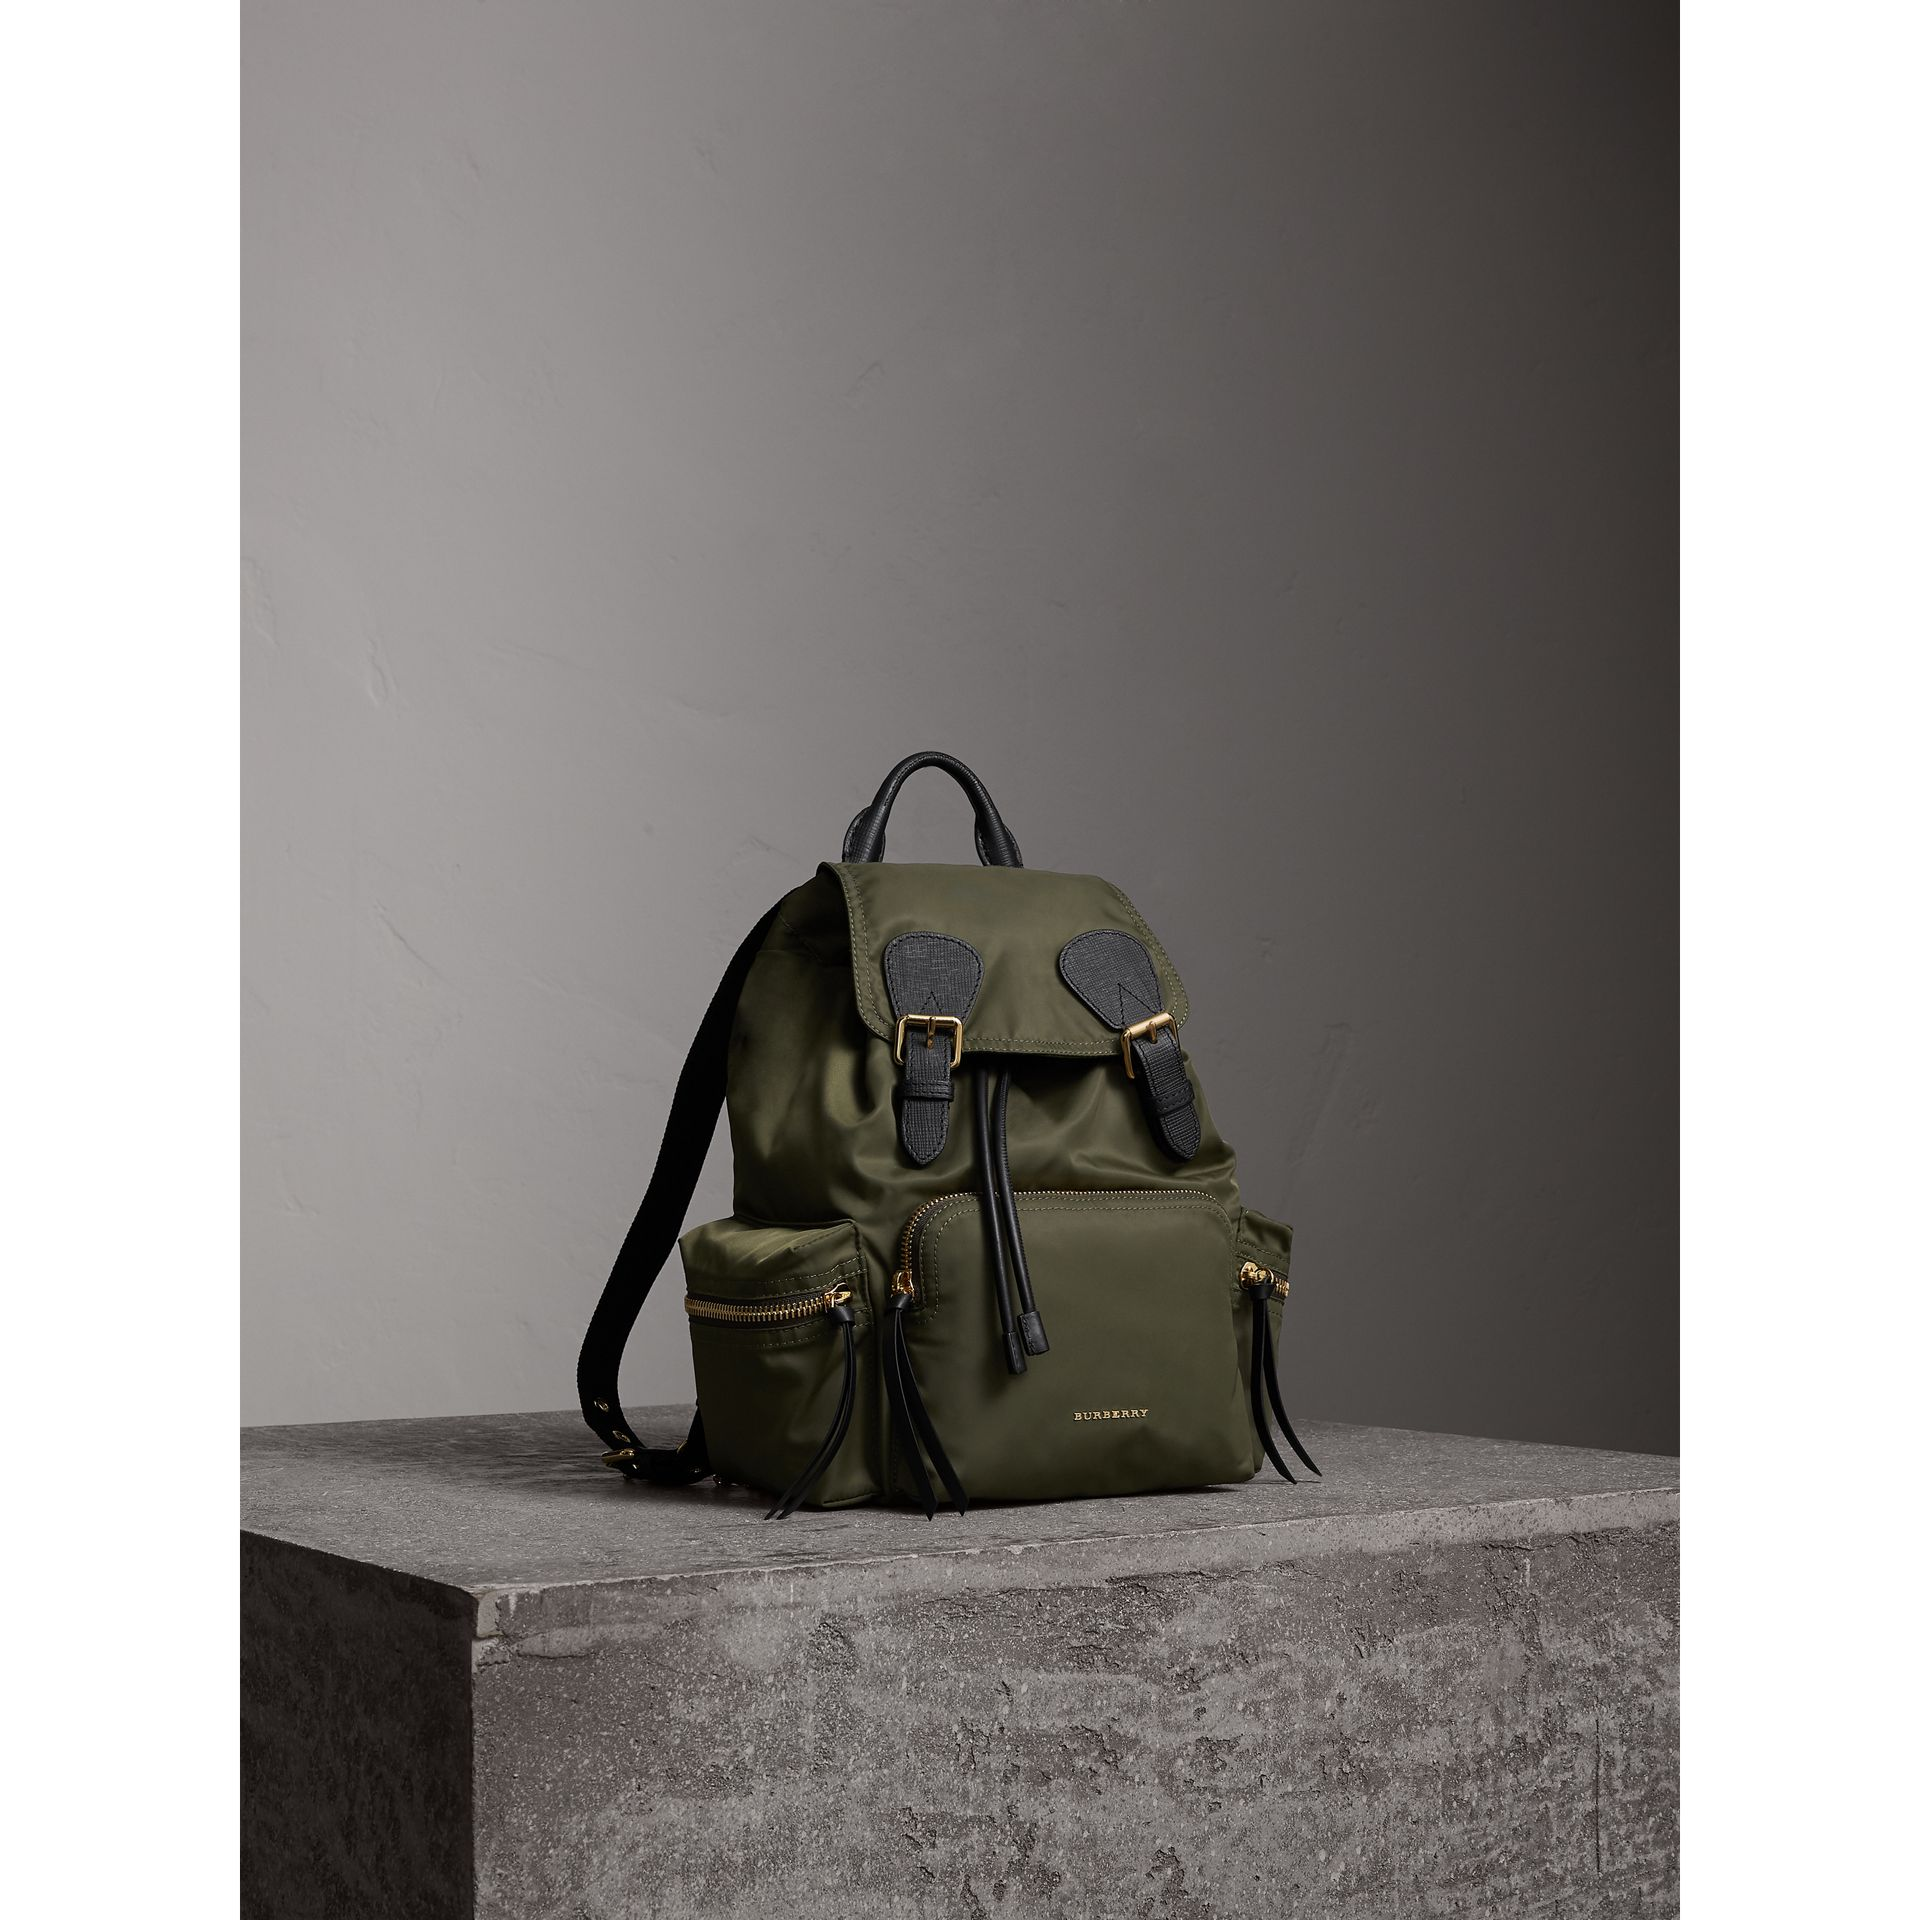 Sac The Rucksack medium en nylon technique et cuir (Vert Toile) - Femme | Burberry - photo de la galerie 8